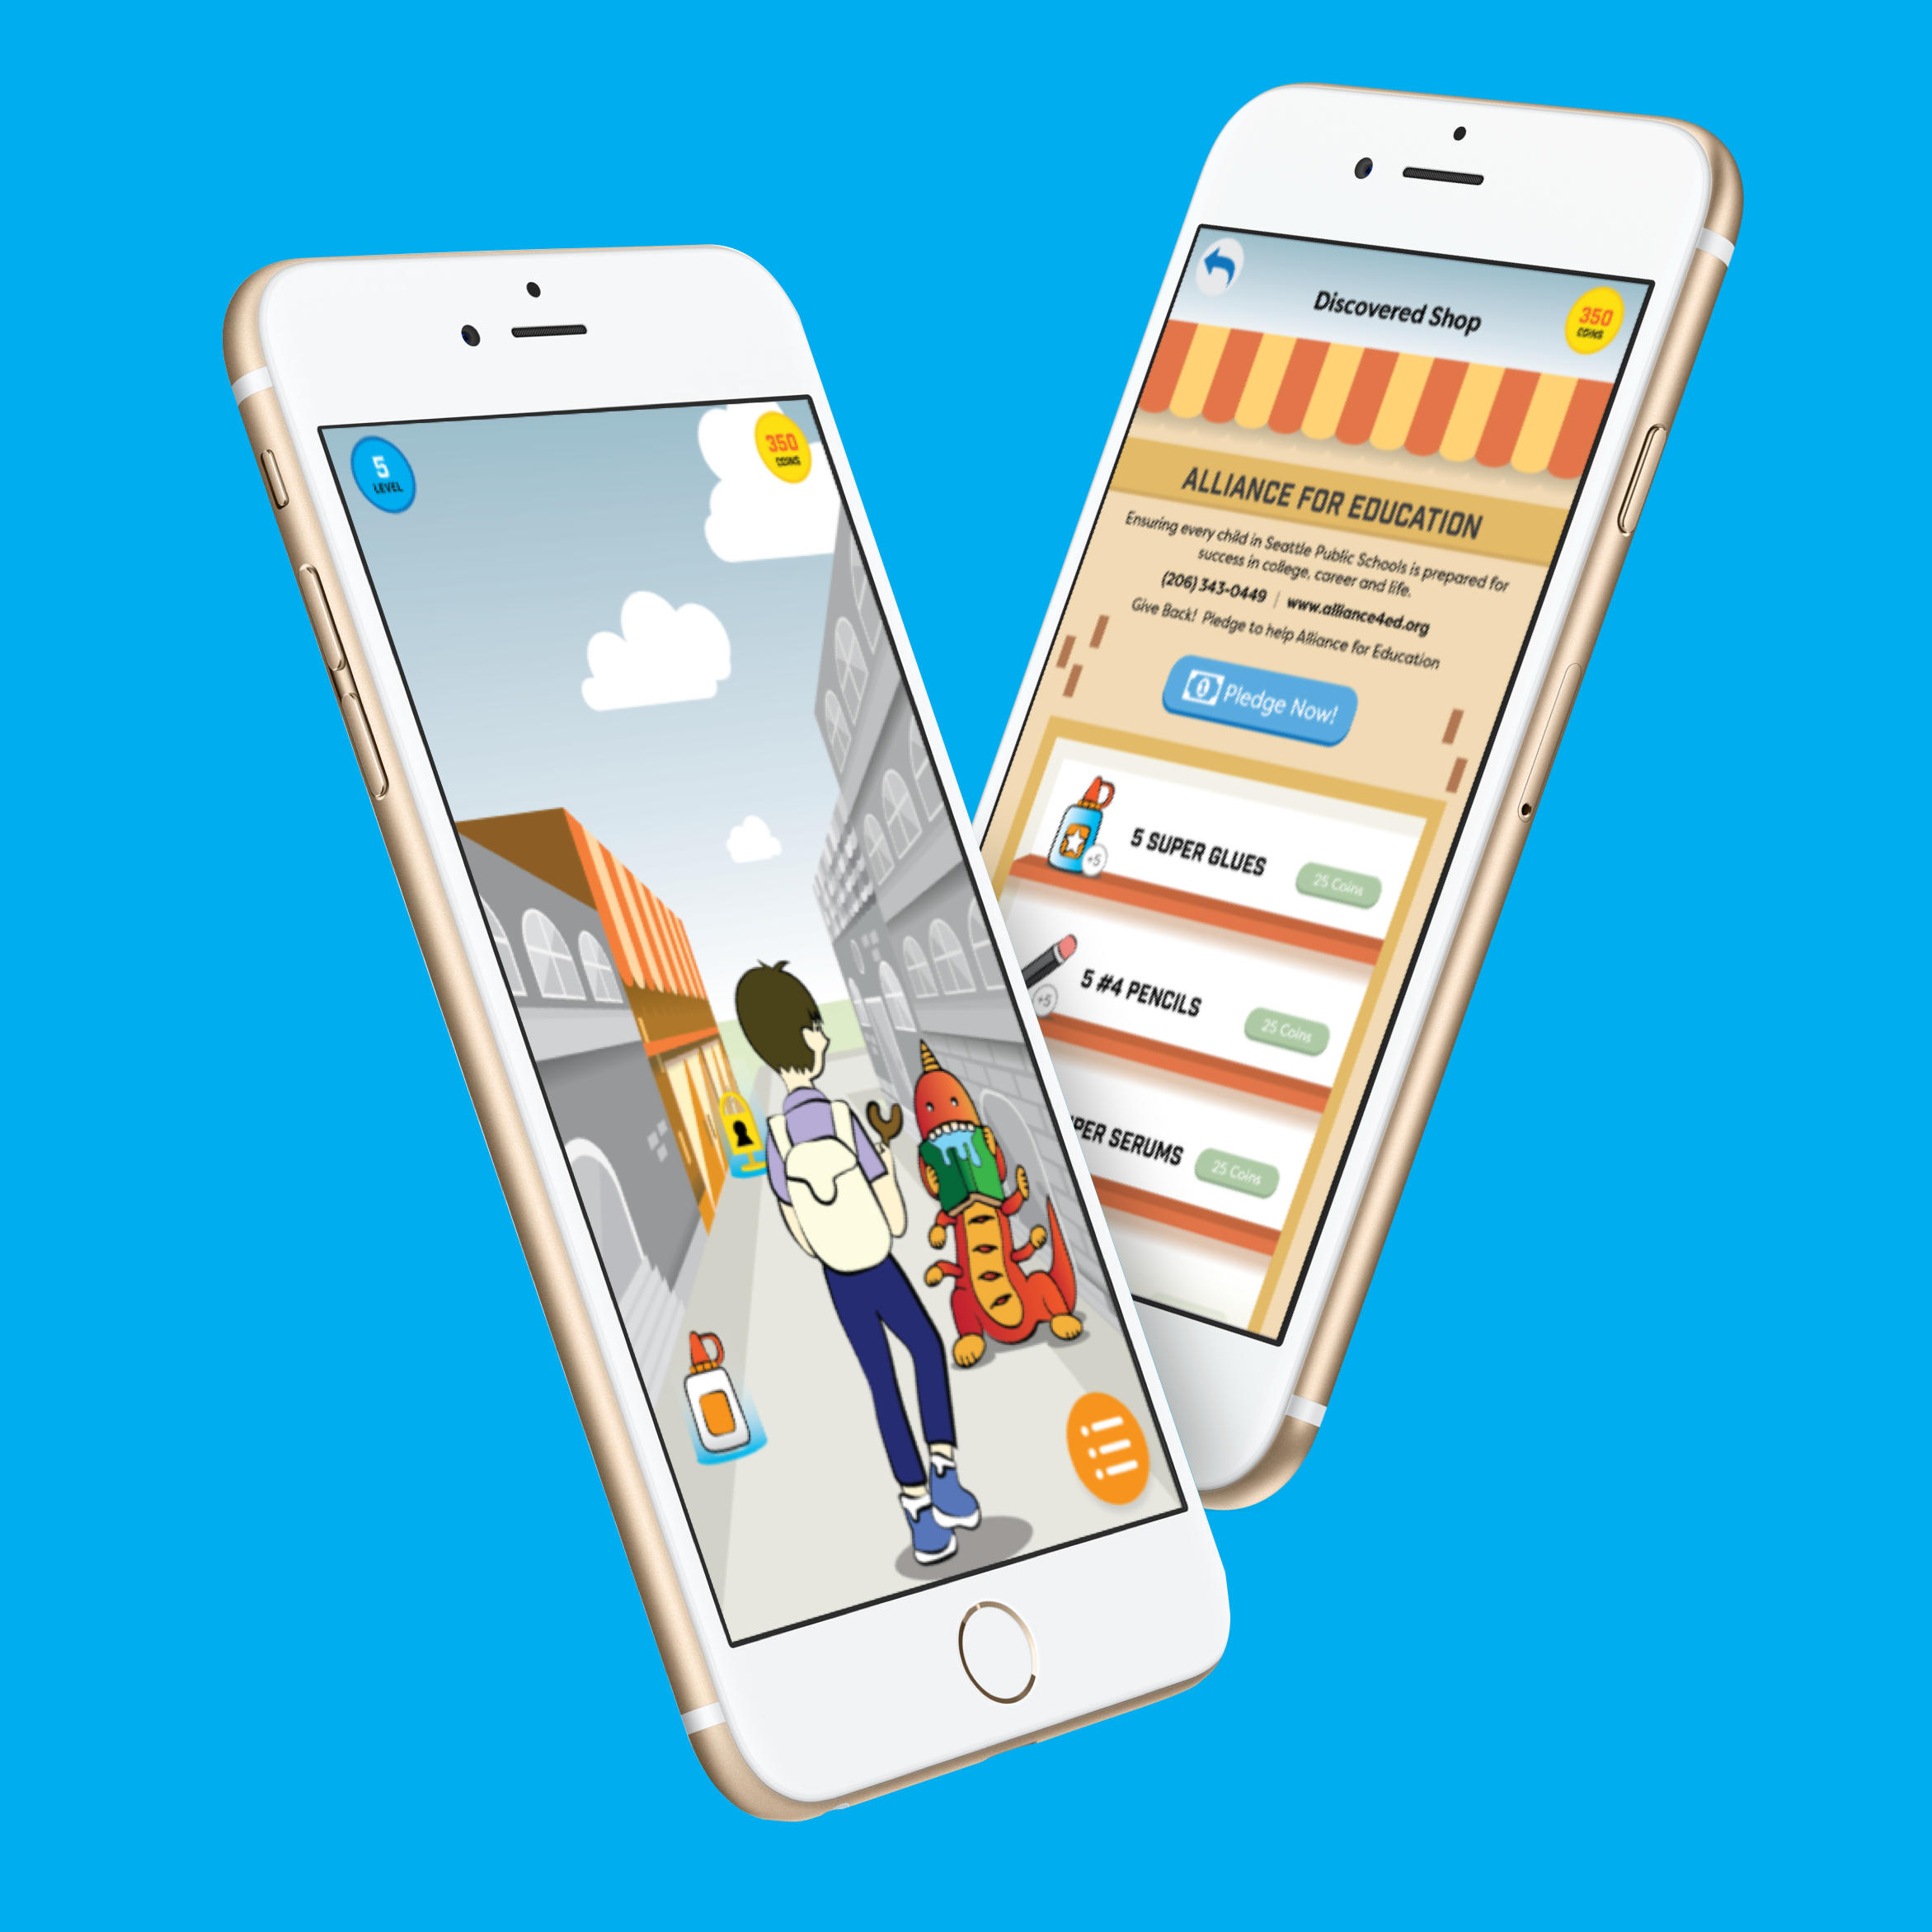 Good Aim - Interaction & Visual DesignGaming, Augmented Reality, Mobile (2016)Good Aim is an augmented reality mobile game that helps students learn about local community needs and responsibly donate to charities.